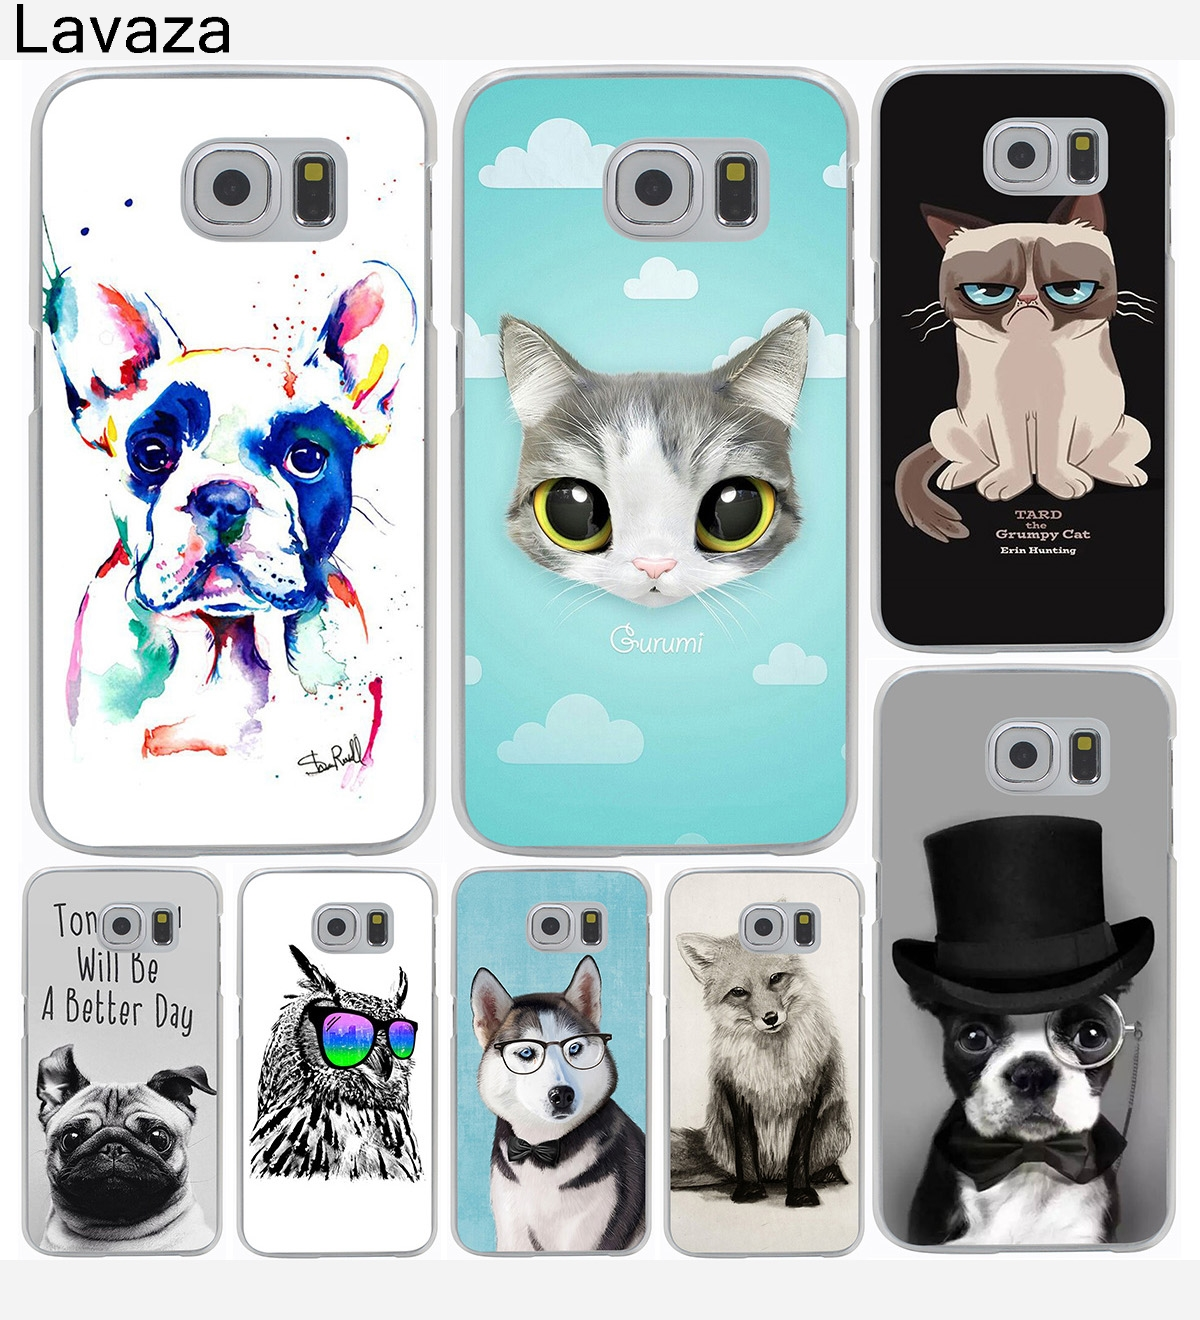 lavaza fashion programmer cat animal dog hard phone cover case for